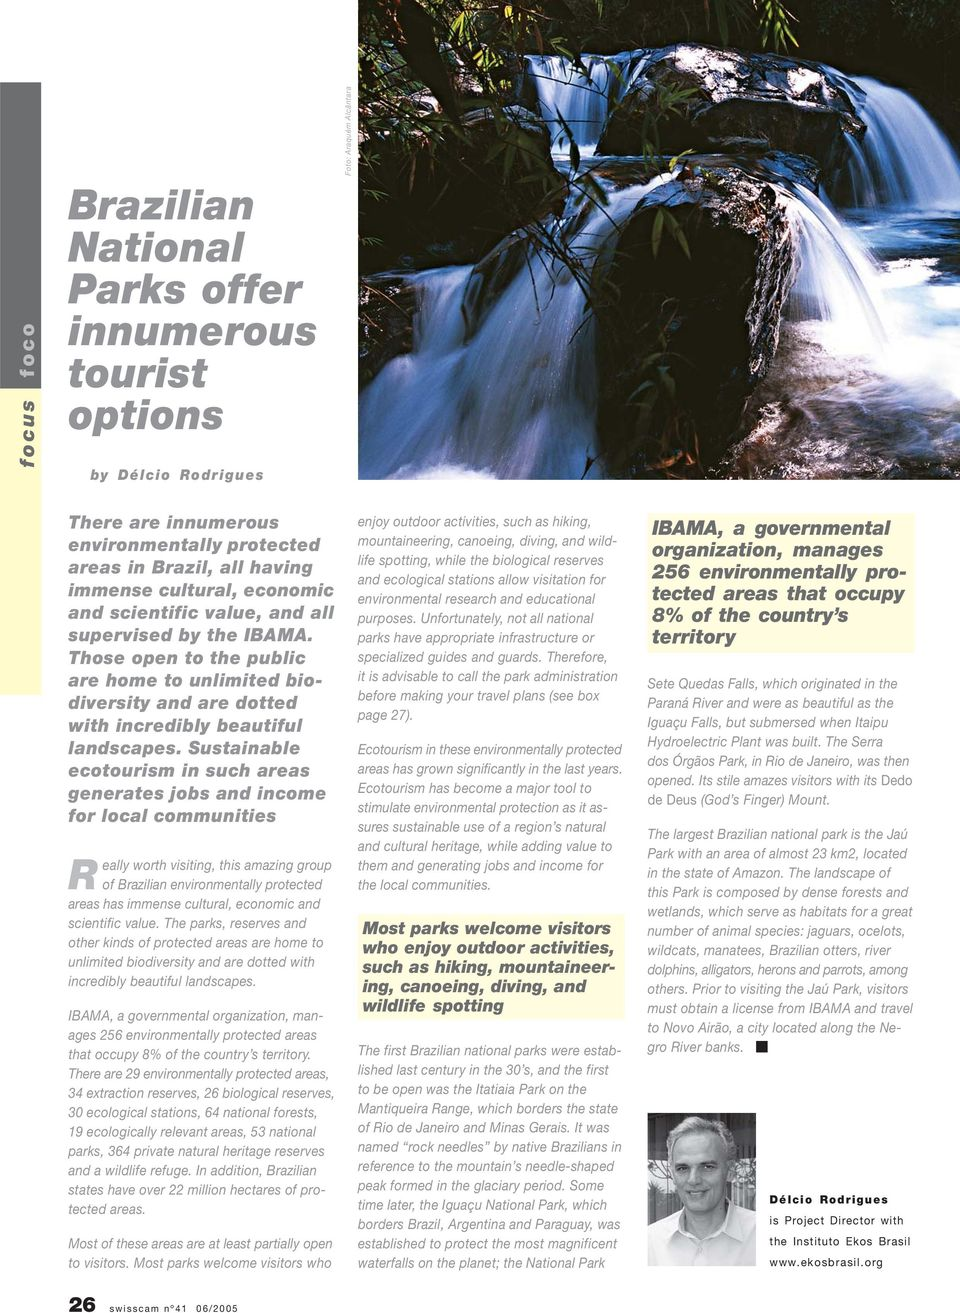 Sustainable ecotourism in such areas generates jobs and income for local communities Really worth visiting, this amazing group of Brazilian environmentally protected areas has immense cultural,